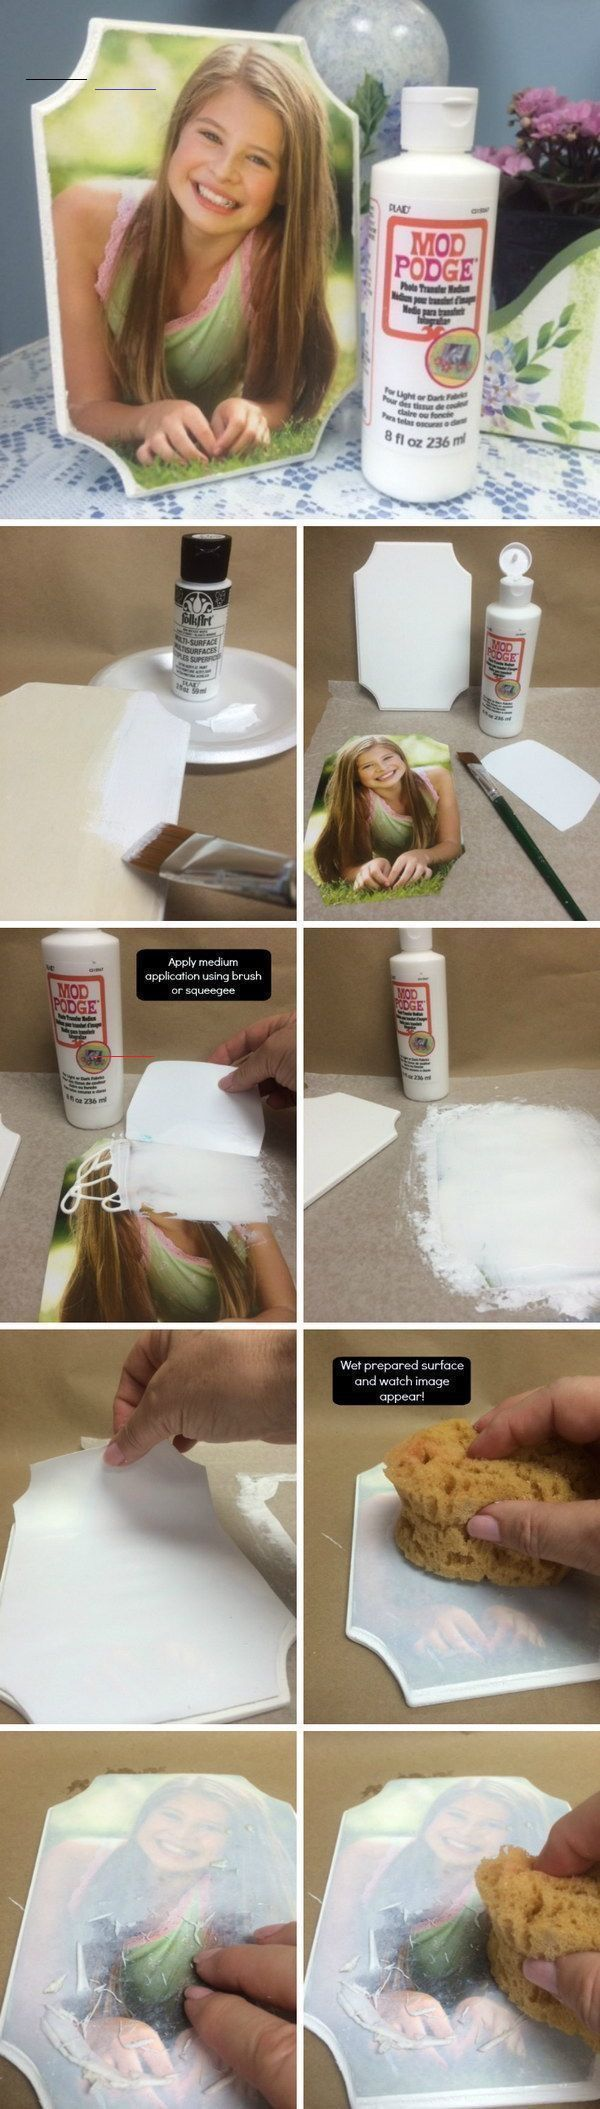 33+ Mod podge crafts photo transfer ideas in 2021